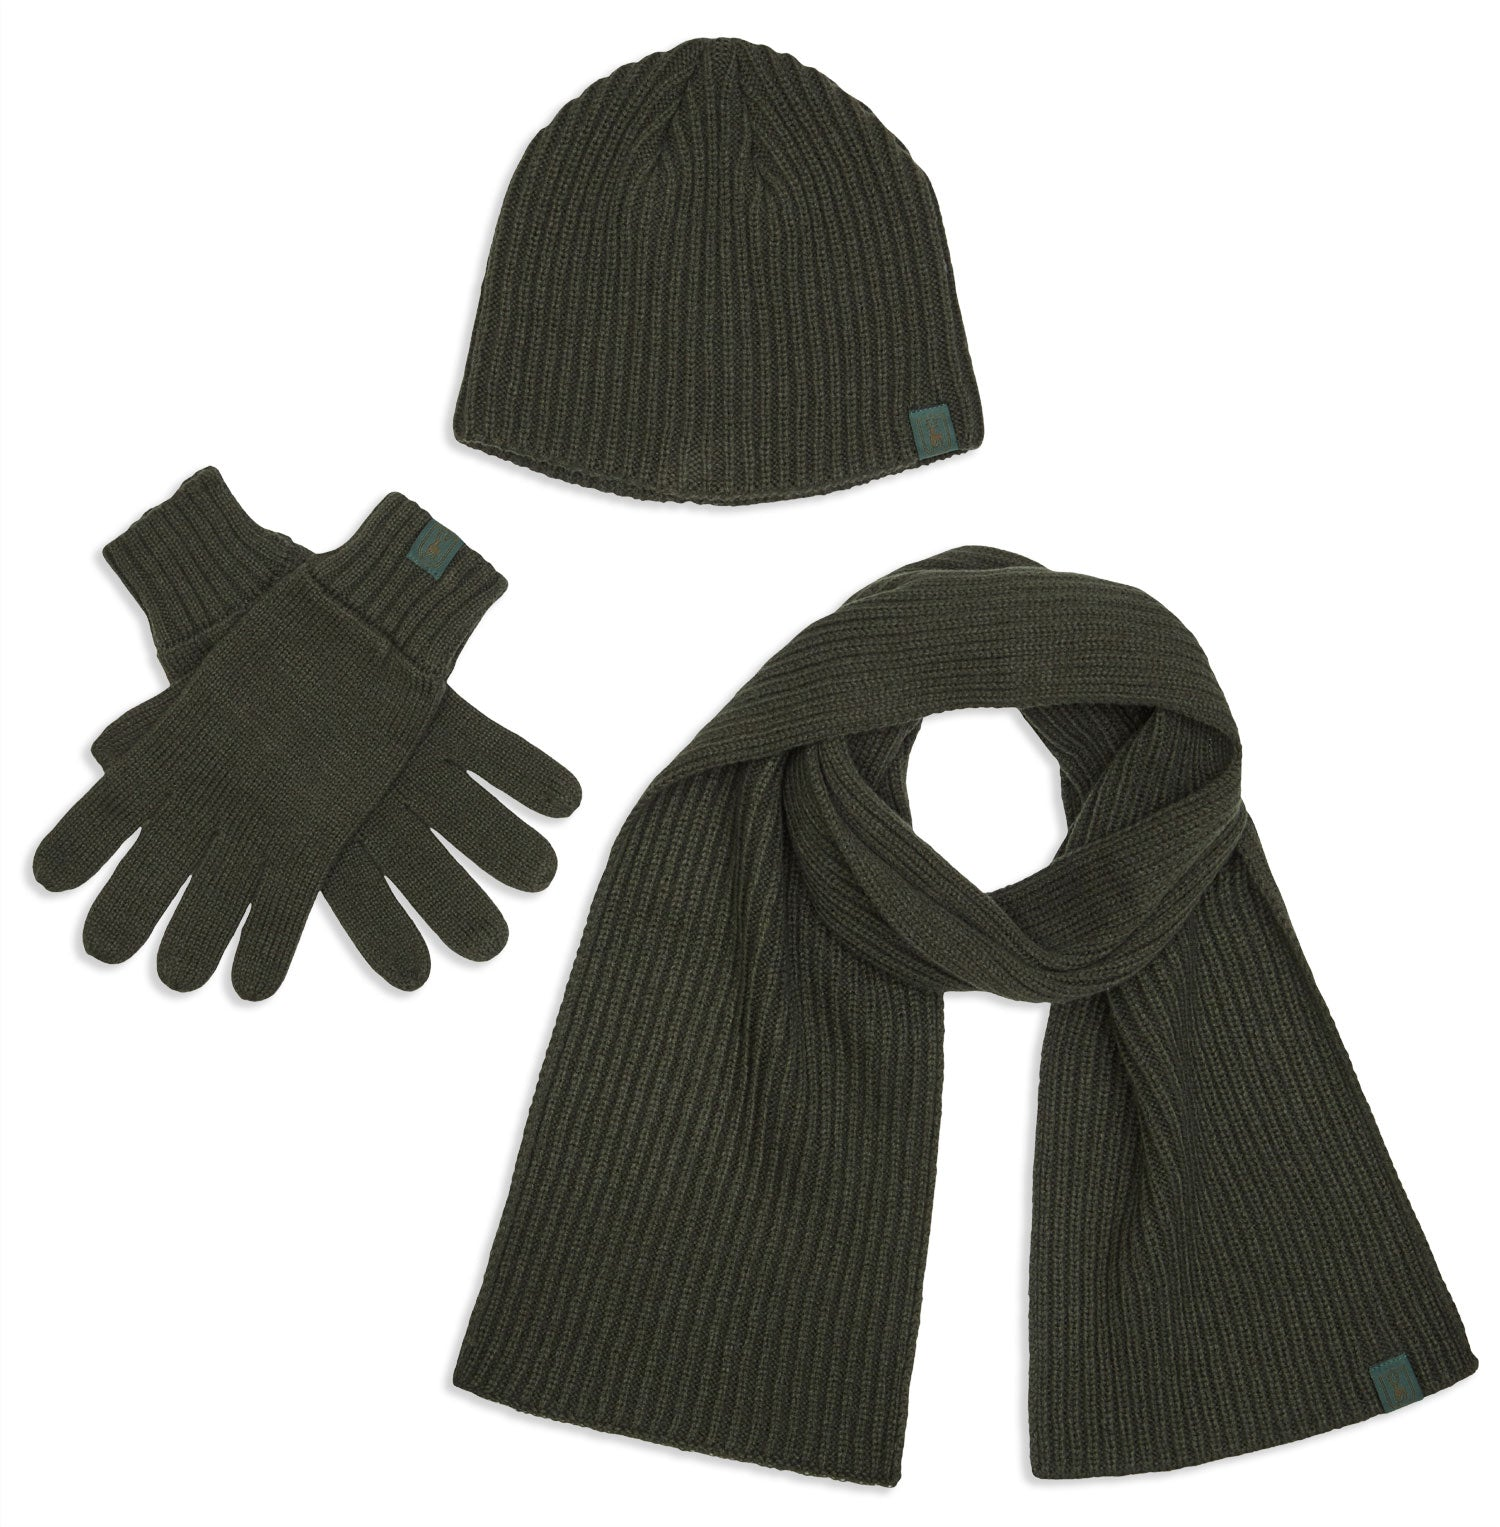 Deerhunter 3 Piece Winter Set | Hat, Scarf & Gloves